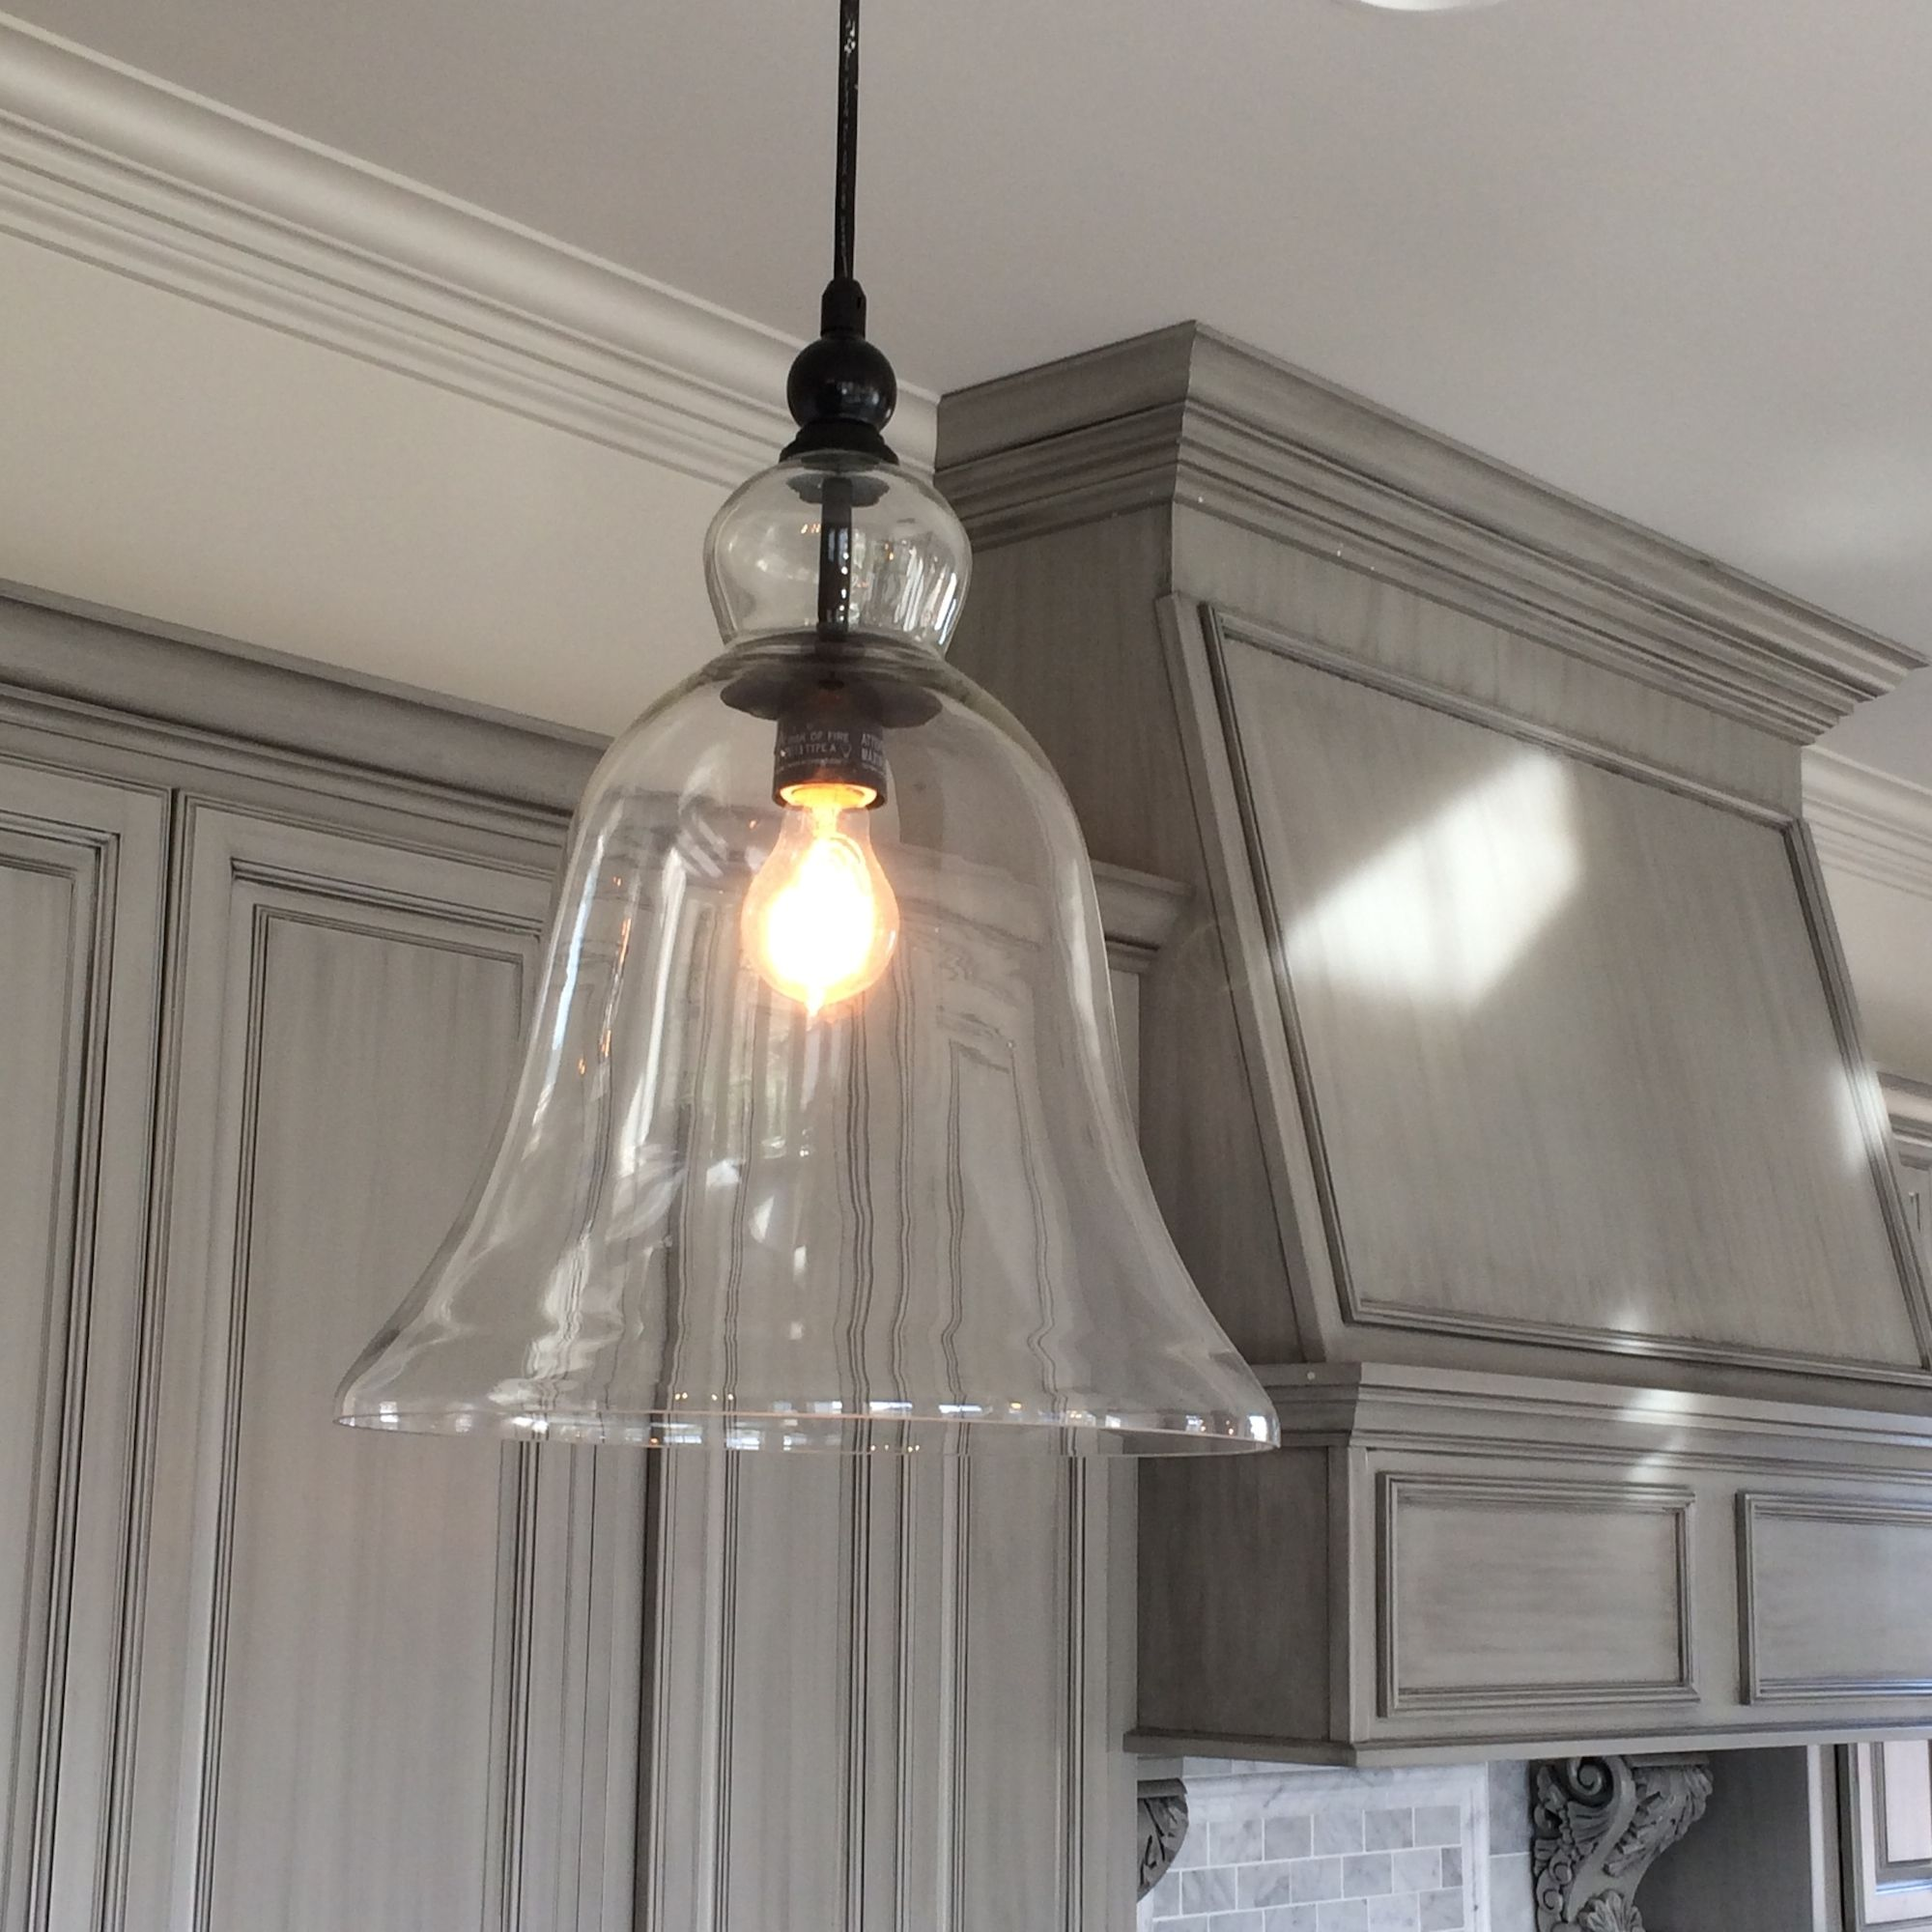 kitchen chandelier lighting ninja ultra system large glass bell hanging pendant light favorite